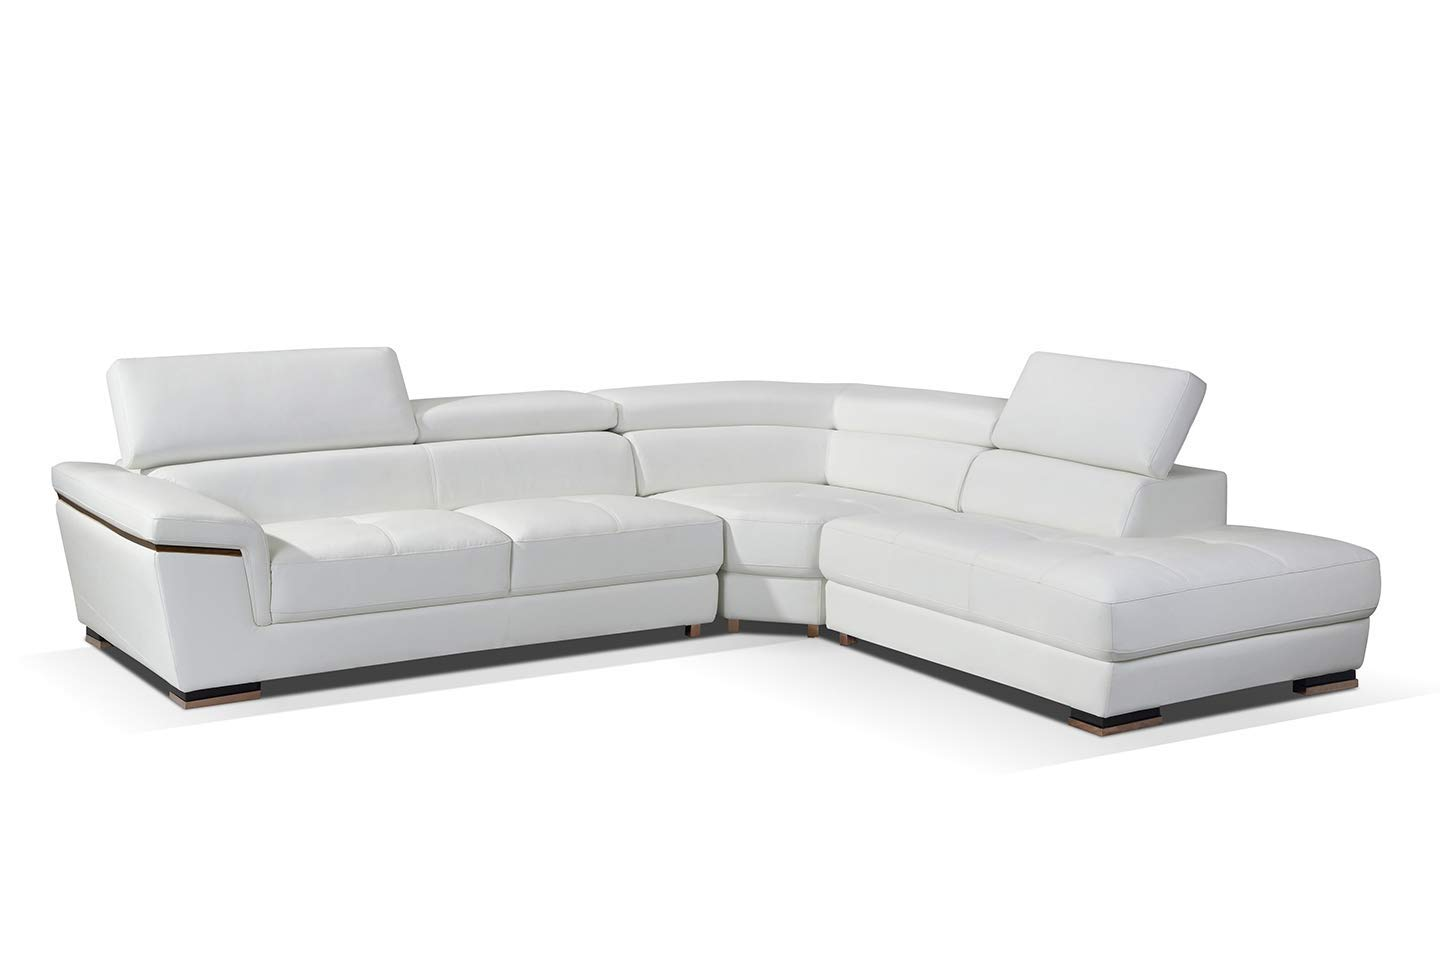 ESF Furniture 2383 Leather Right Hand Facing Sectional Sofa in White